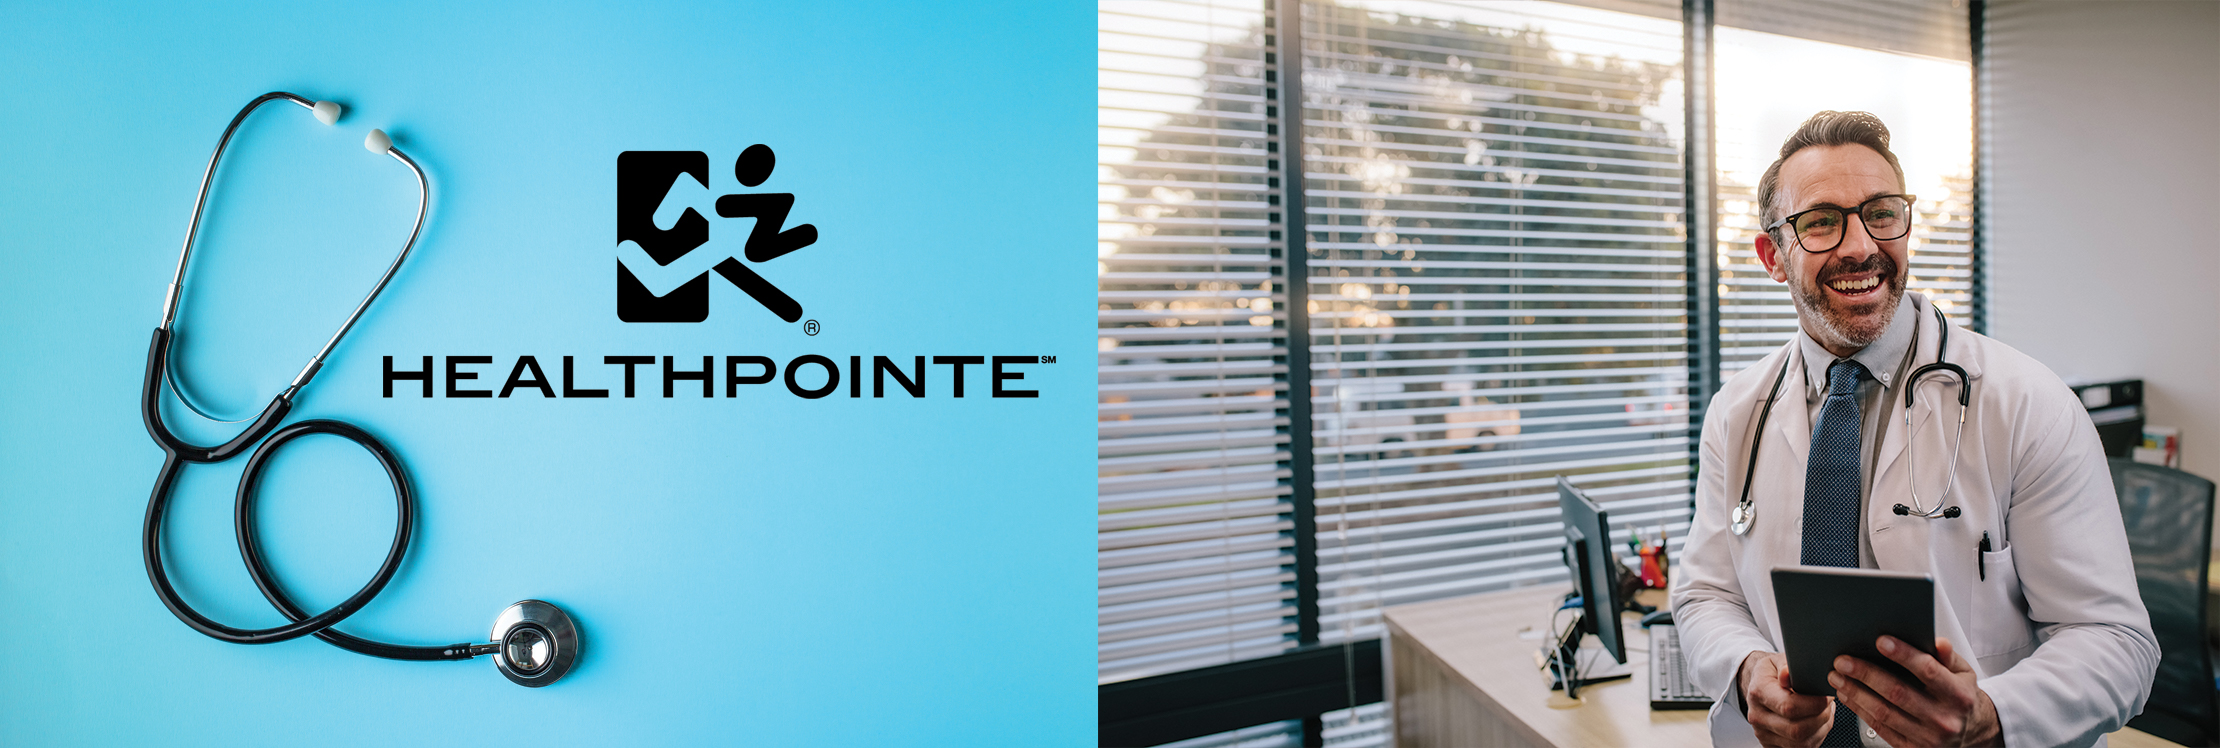 Healthpointe reviews | Doctors at 290 N 10th St - Colton CA